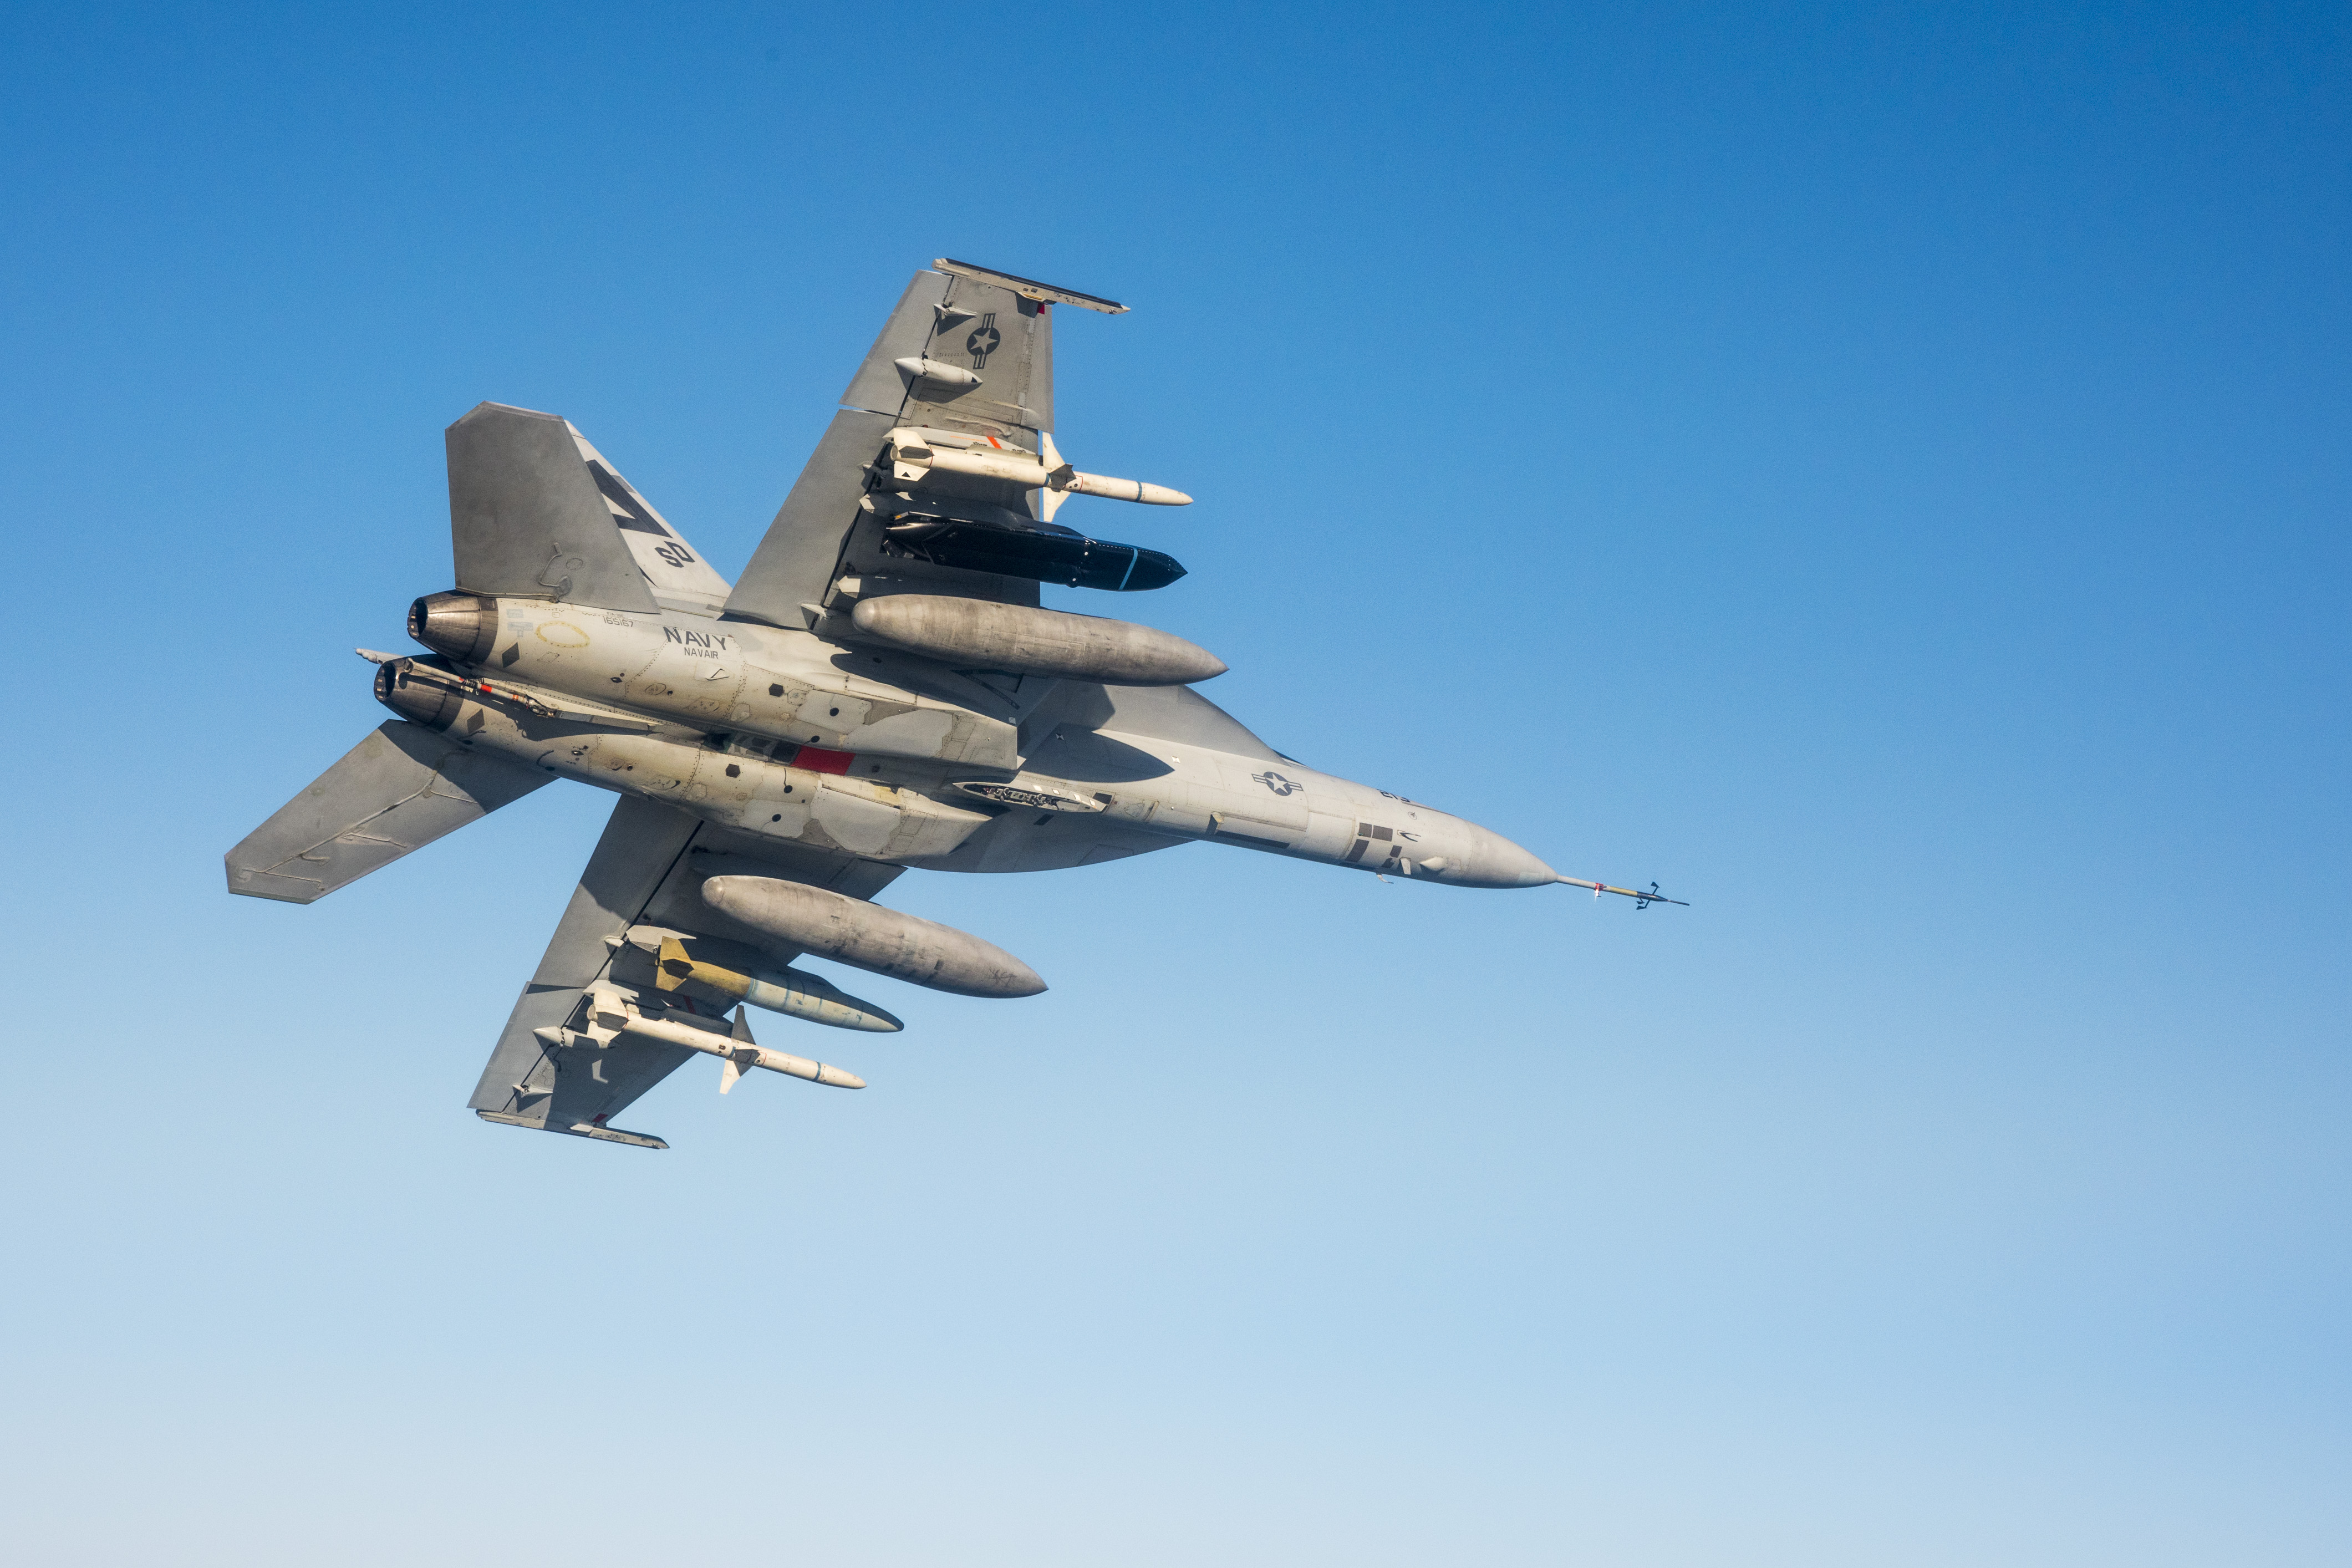 A F/A-18E flying with a black LRASM missile. Lockheed Martin Photo